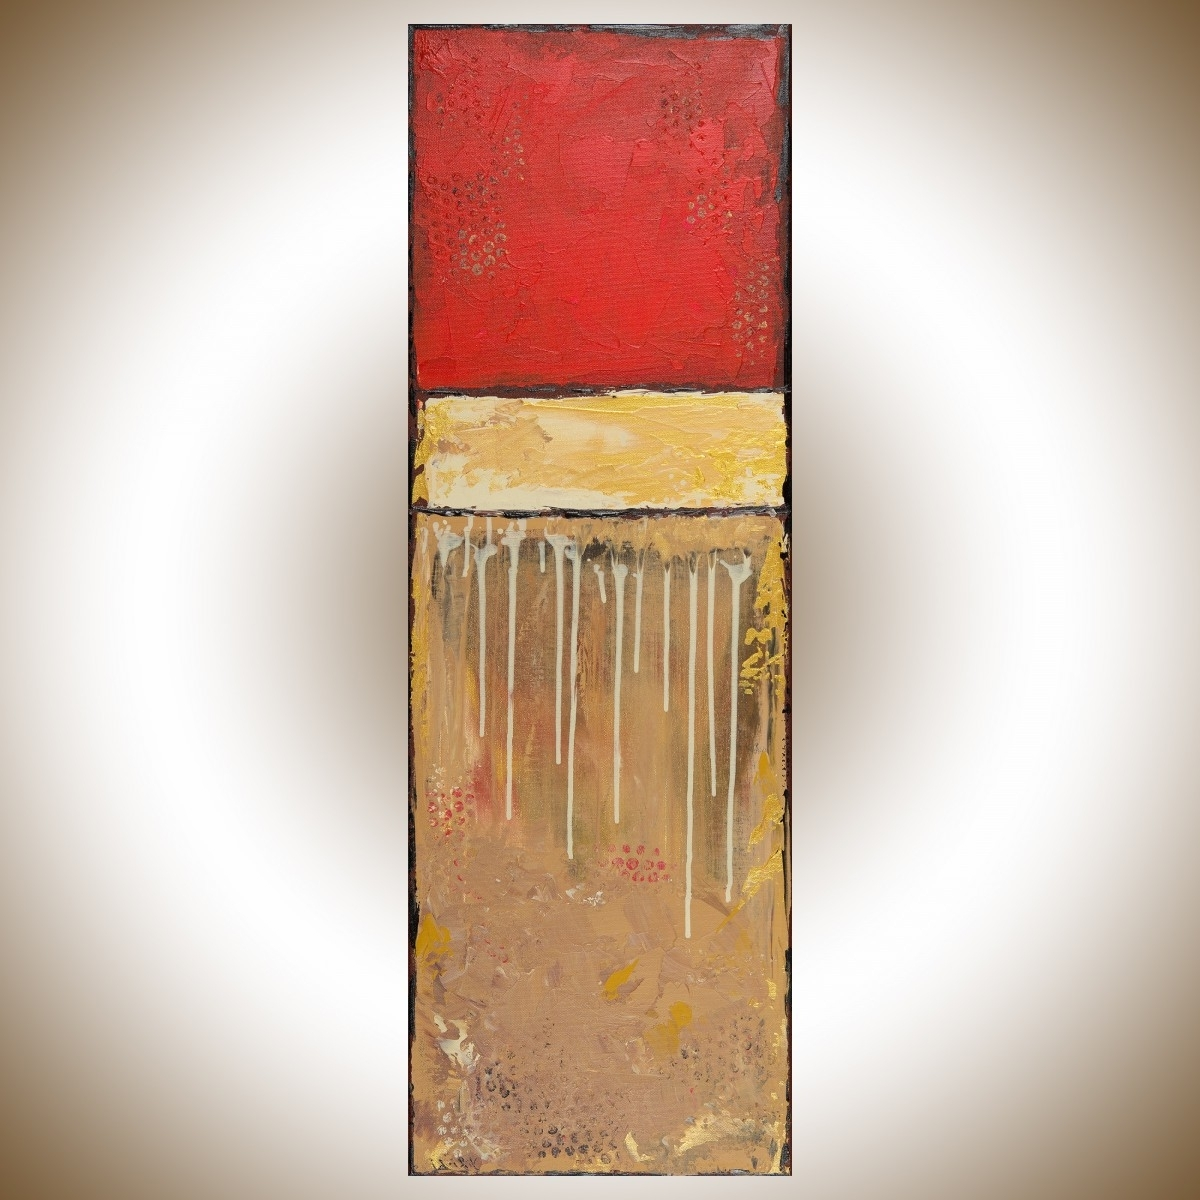 "Golden Luckqiqigallery 12"" X 36"" Original Modern Abstract Intended For Favorite Abstract Landscape Wall Art (View 7 of 15)"